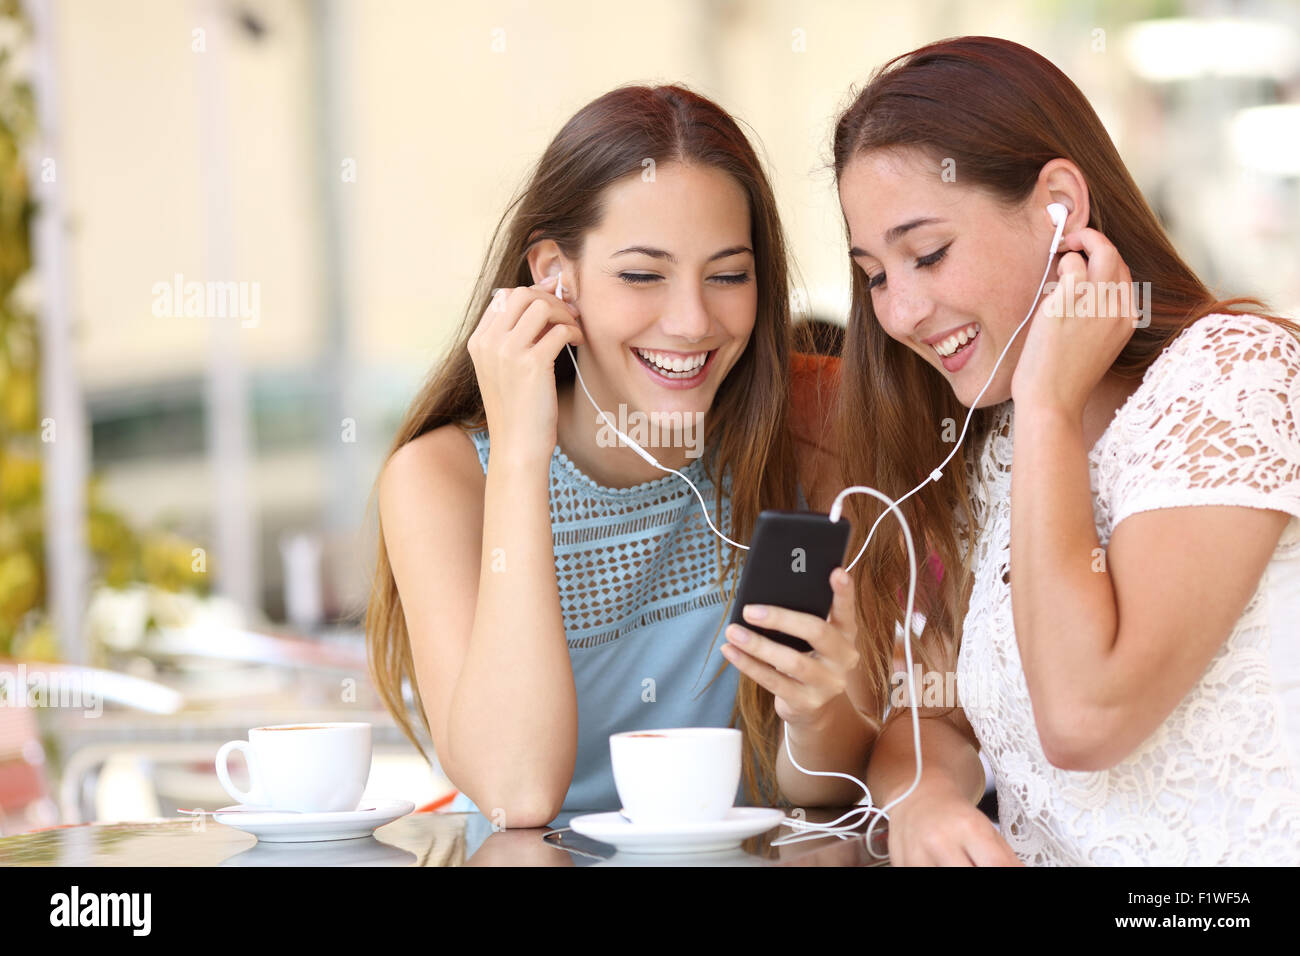 Friends sharing and listening to music with earphones and smartphone in a coffee shop - Stock Image